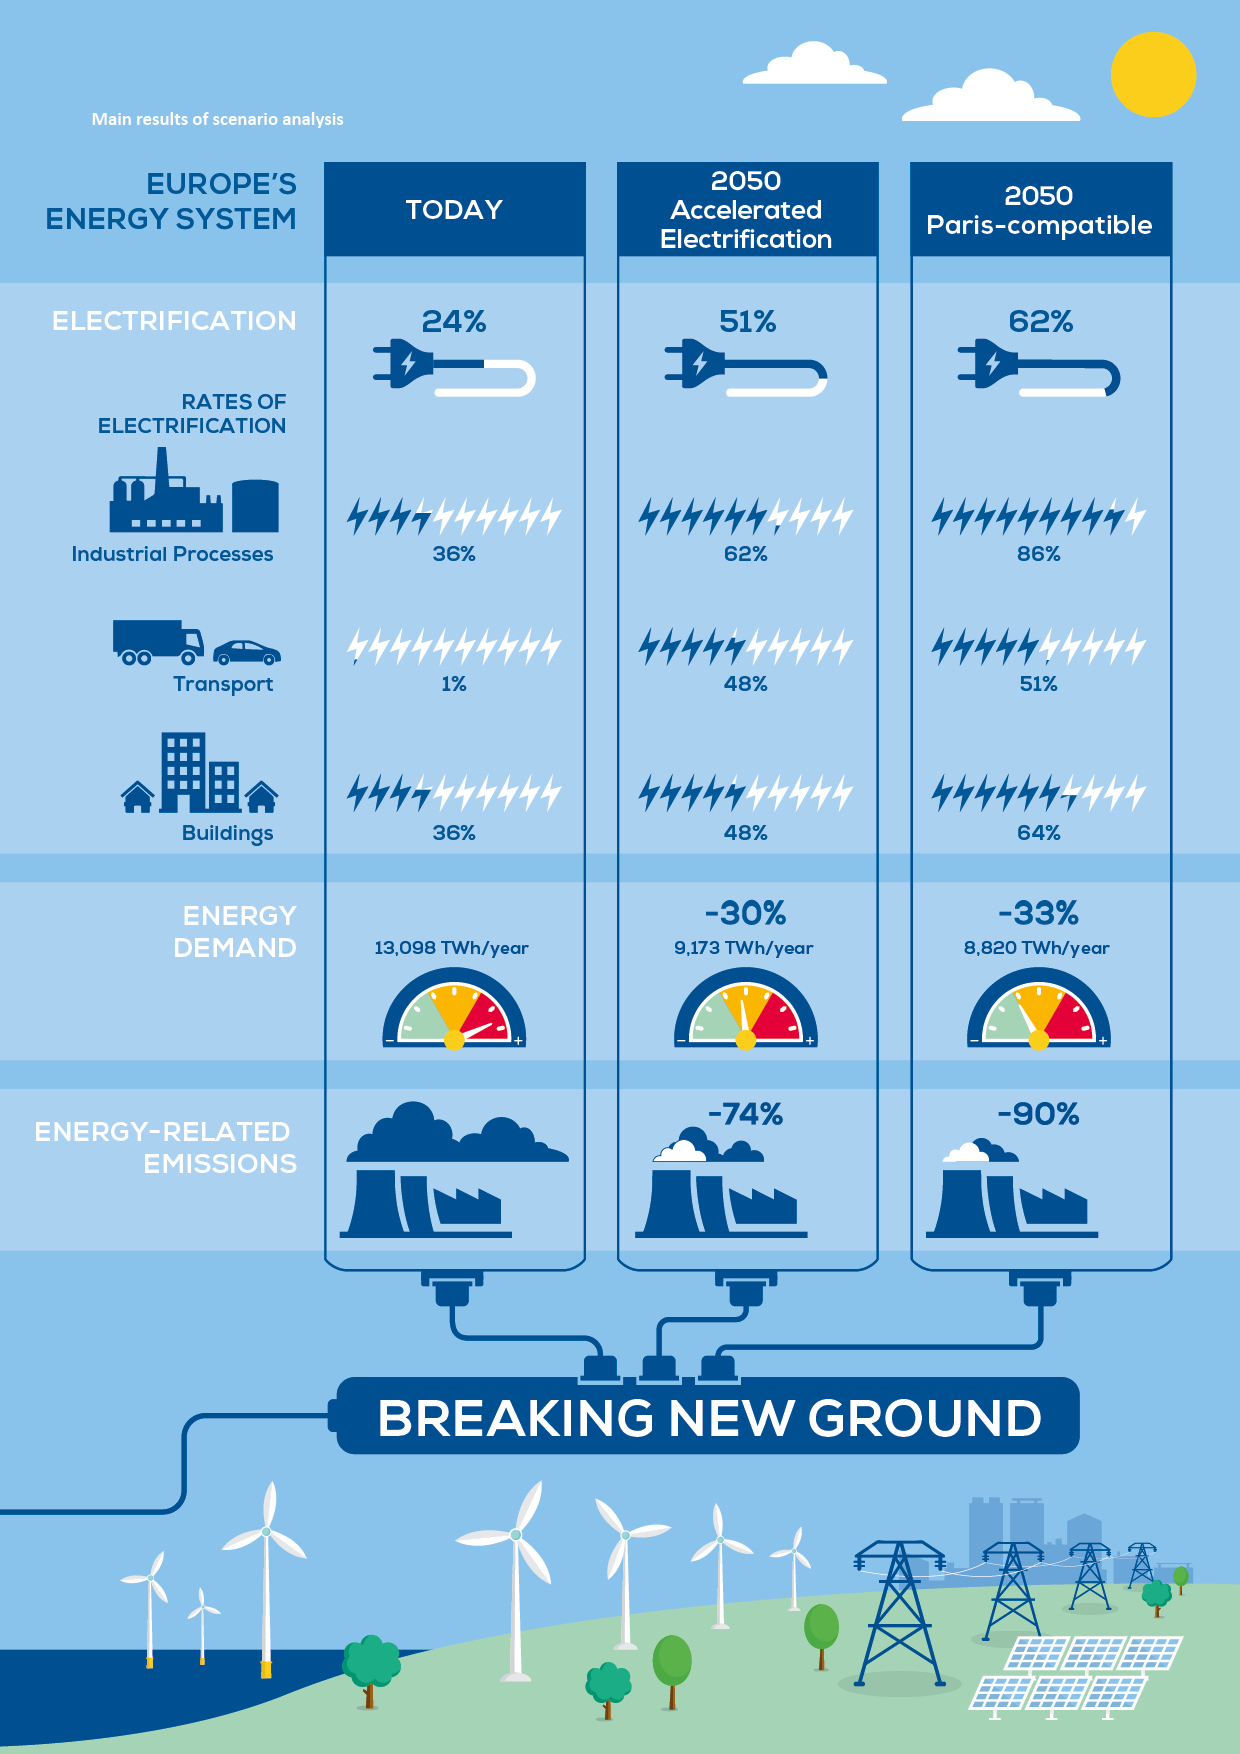 https://windeurope.org/wp-content/uploads/images/about-wind/reports/breaking-new-ground/key-figures/graph01.jpg